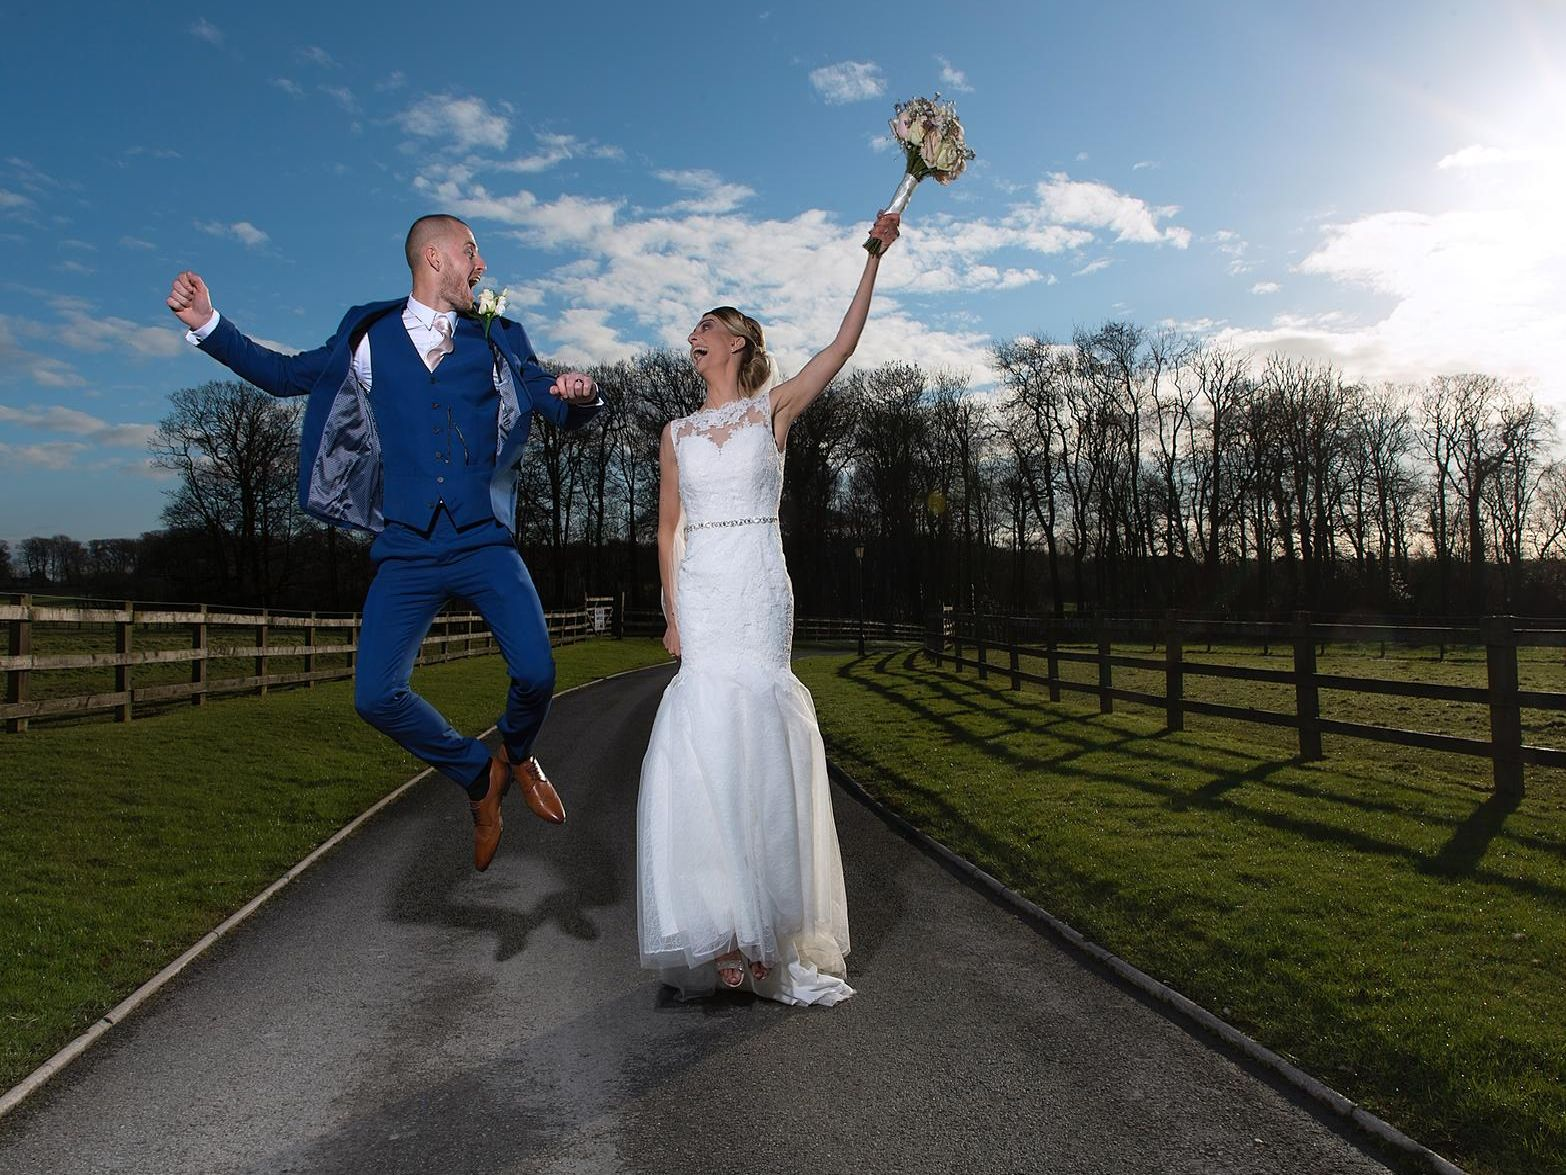 And the winter sun shone for the couple's big day.